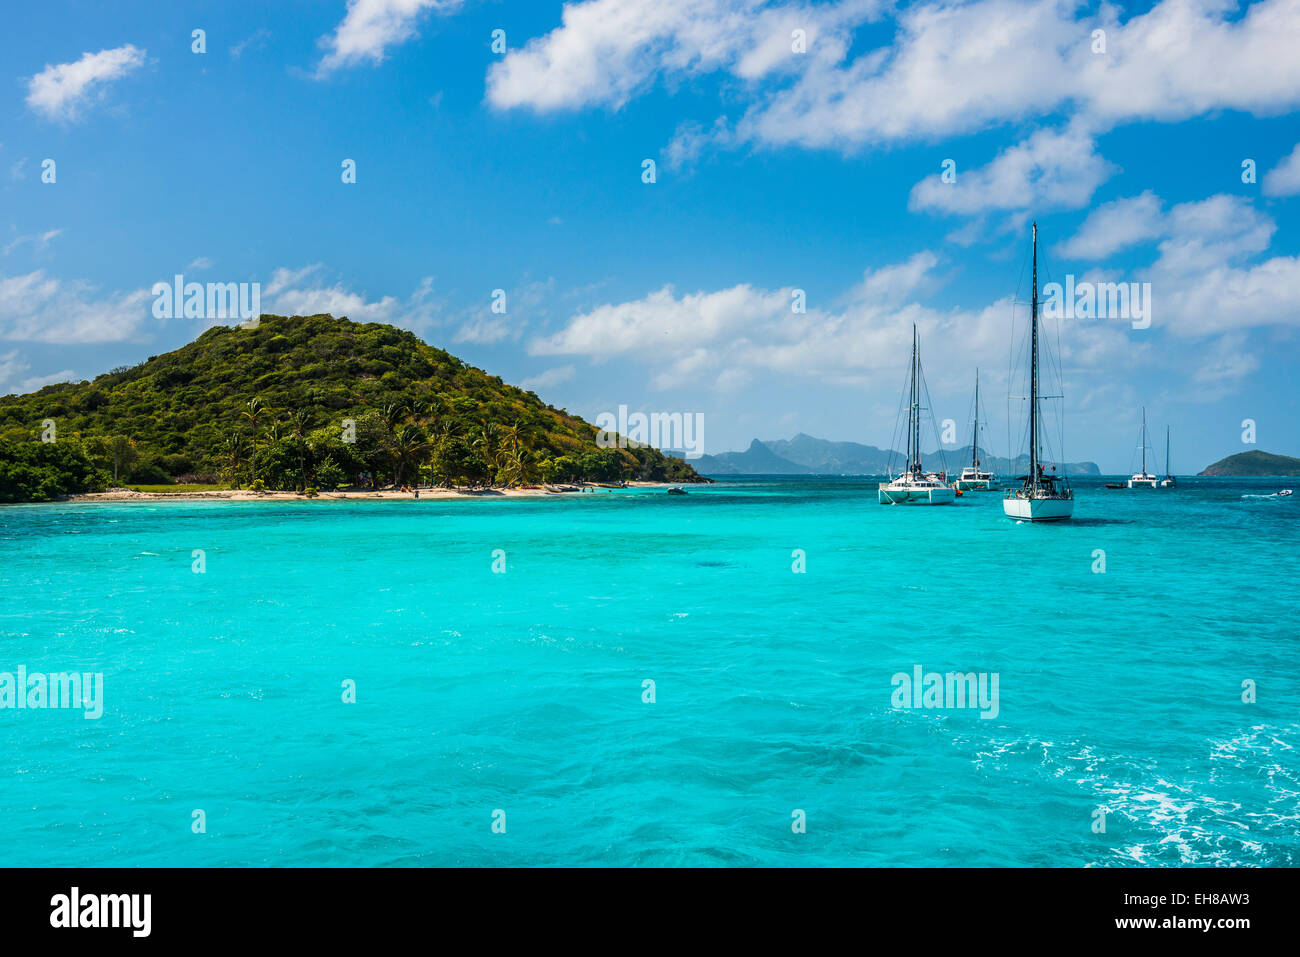 Sailing boats anchoring in the Tobago Cays, The Grenadines, Windward Islands, West Indies, Caribbean - Stock Image